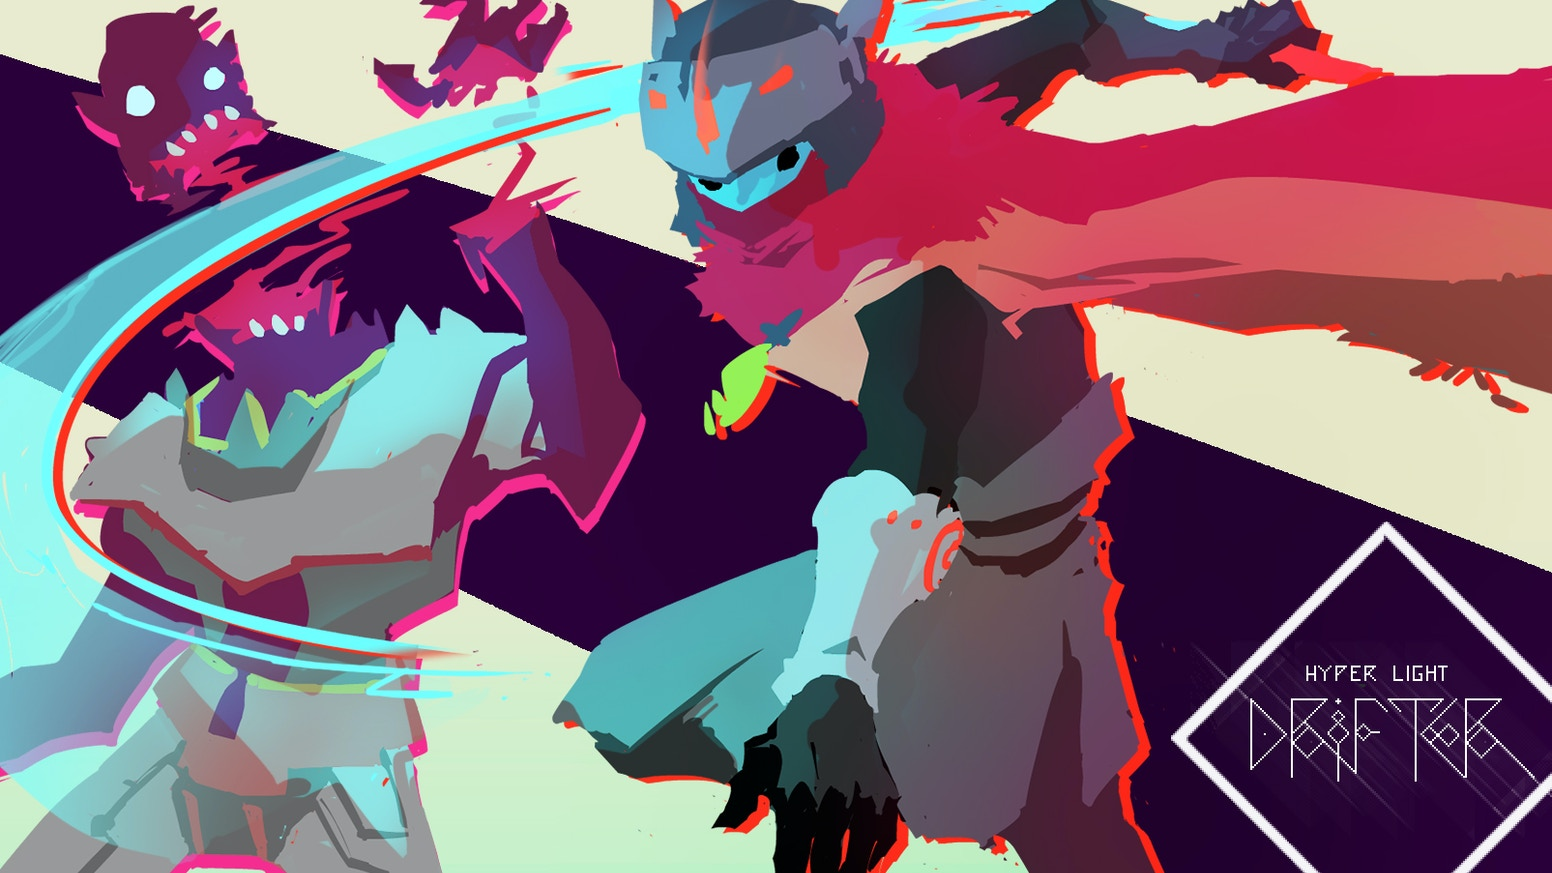 Hyper Light Drifter And Mutant Year Zero Free On The Epic Game